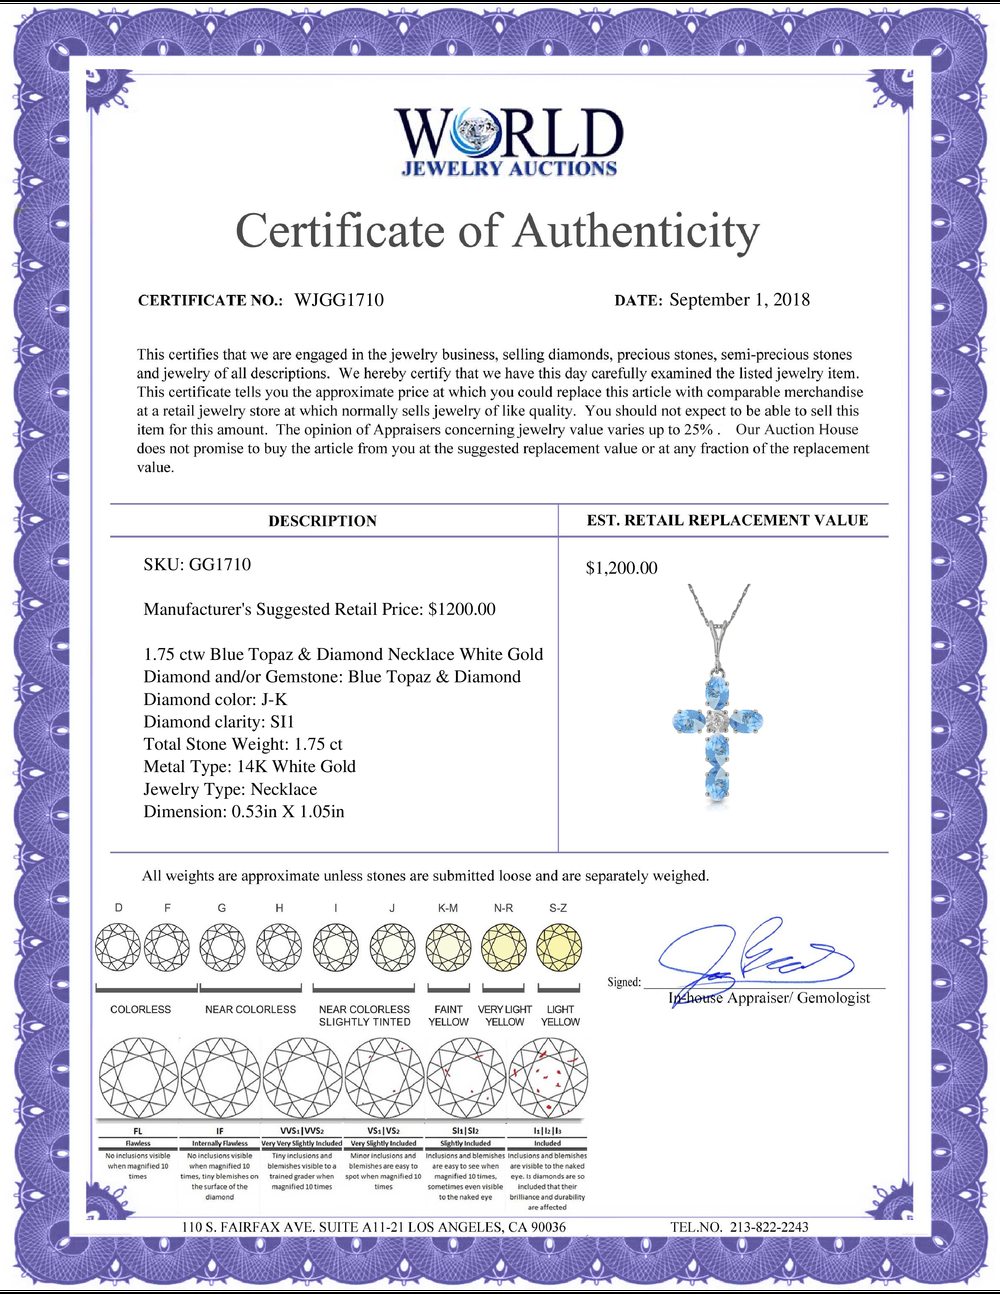 Lot 3047: Genuine 1.75 ctw Blue Topaz & Diamond Necklace Jewelry 14KT White Gold - REF-39F8Z